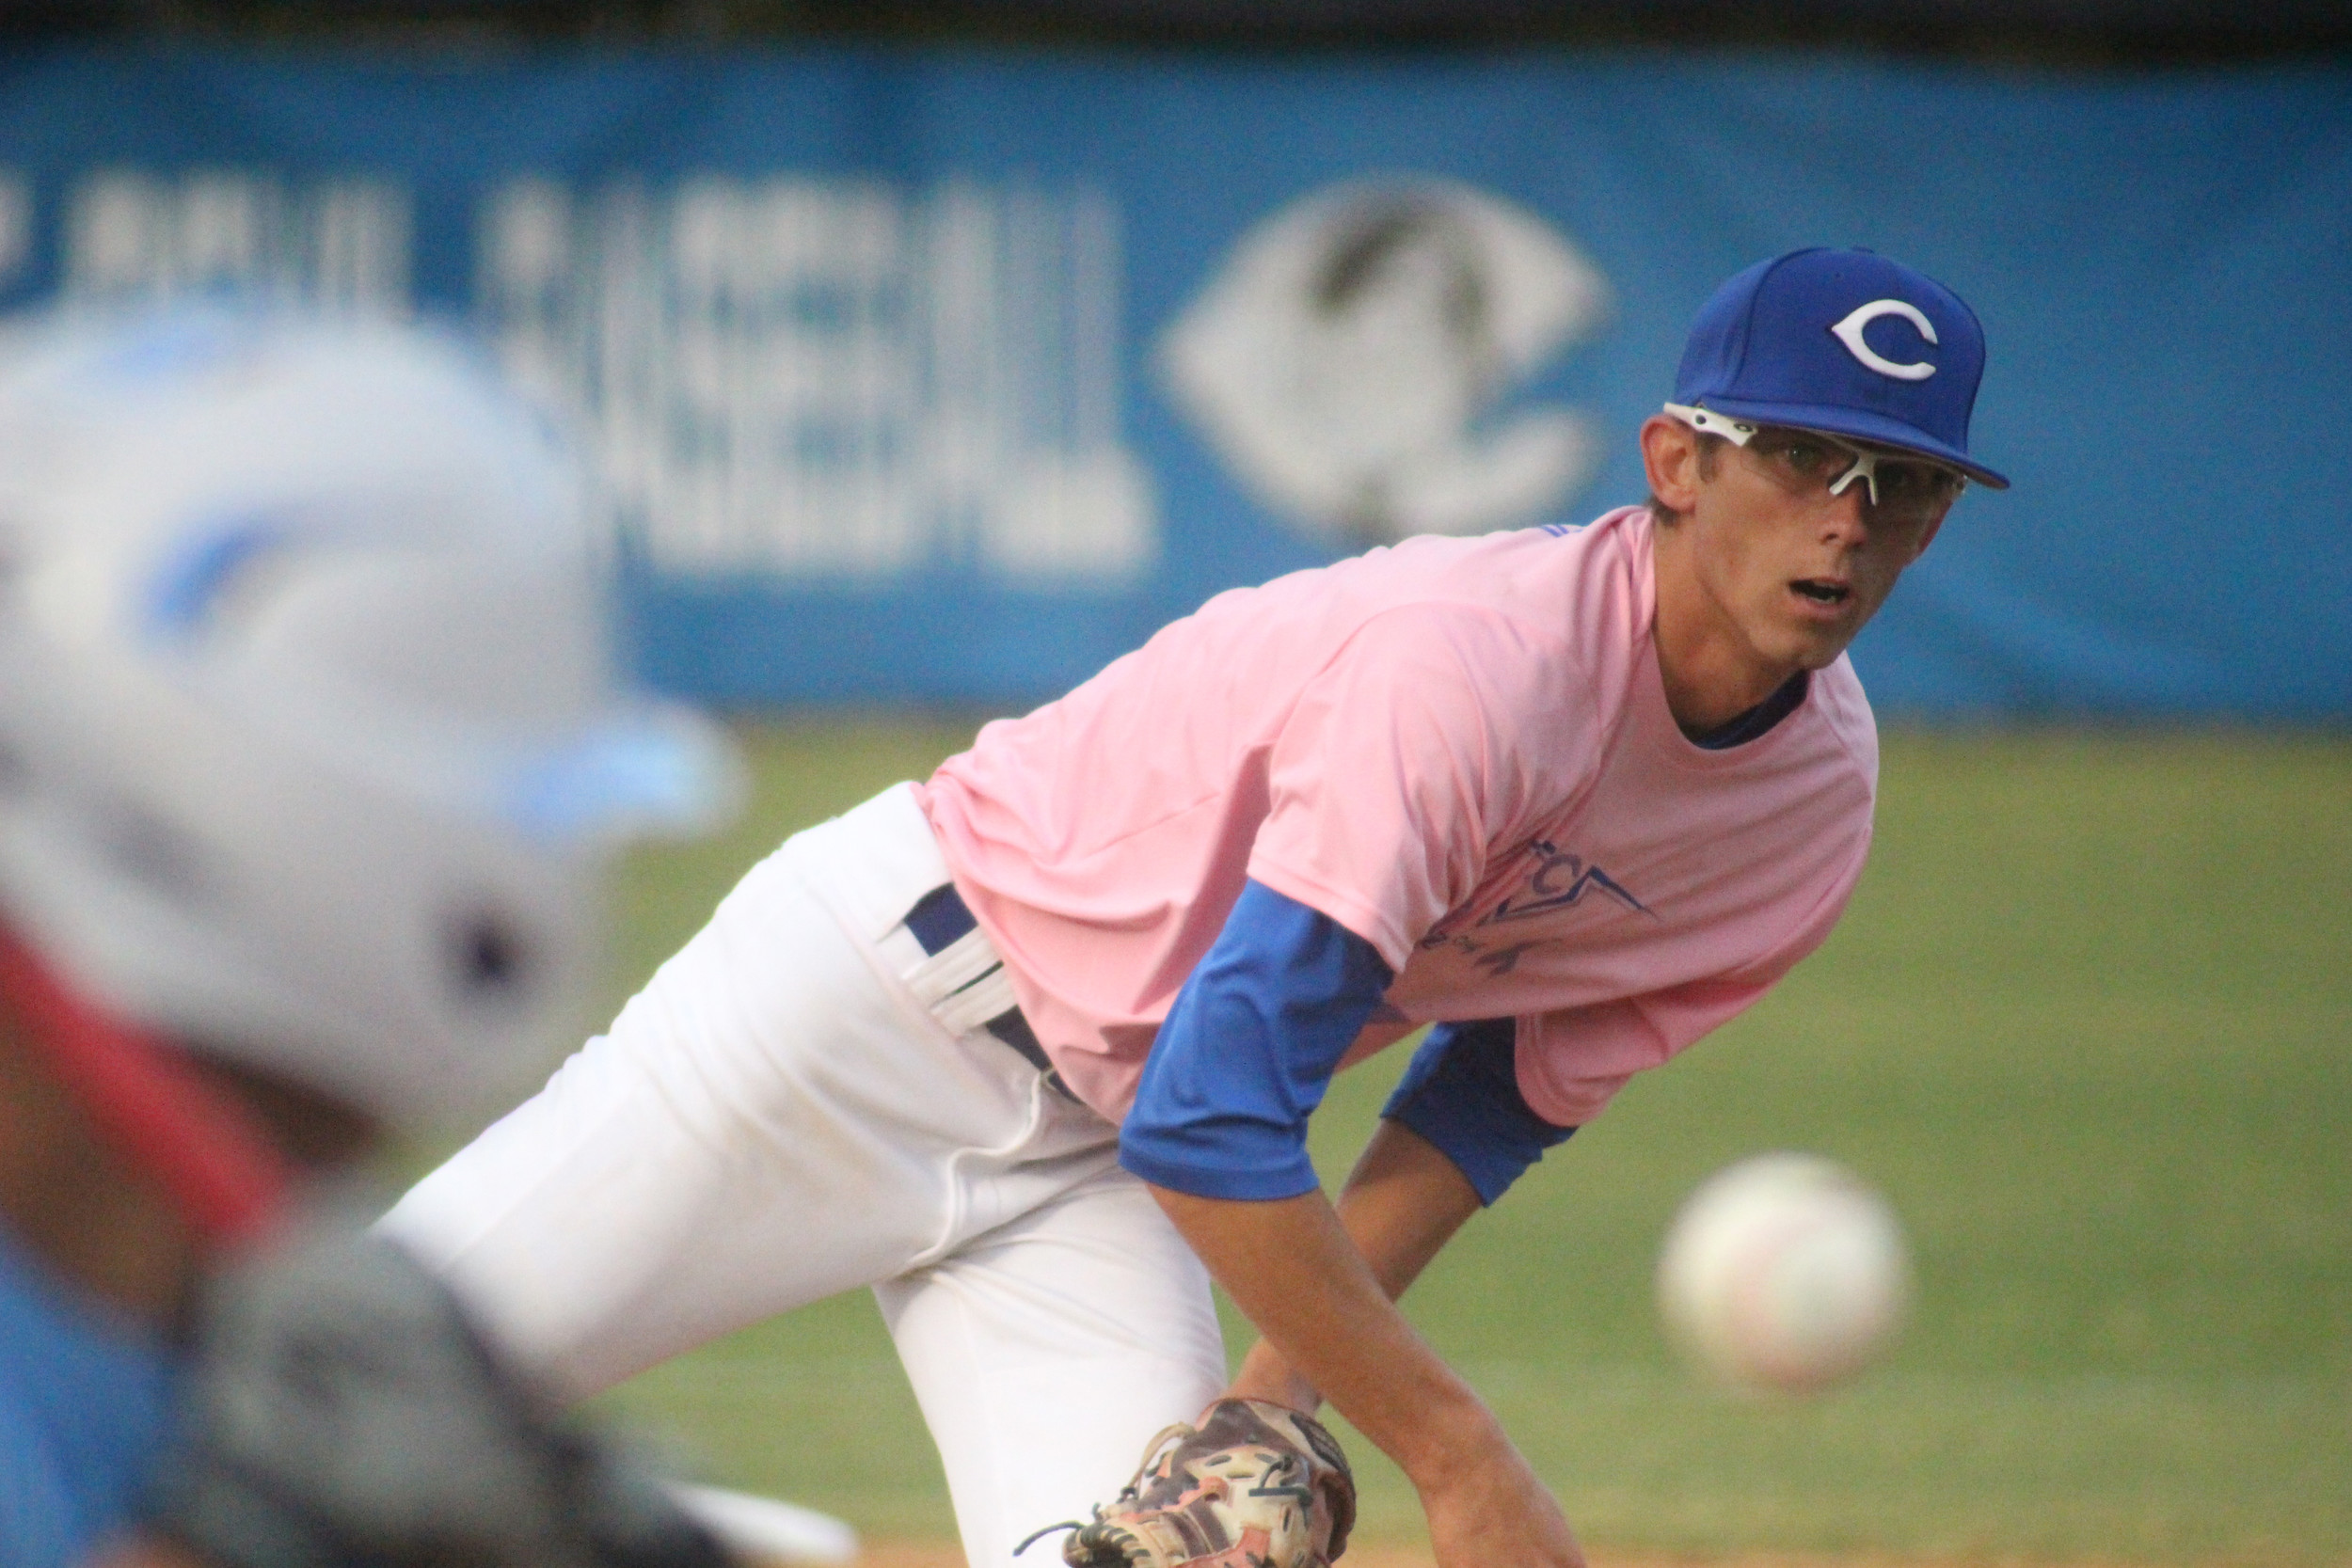 Clay pitcher Holden Alexander is top tosser for Blue Devils and needs strong game to put Clay back in region playoff hunt.